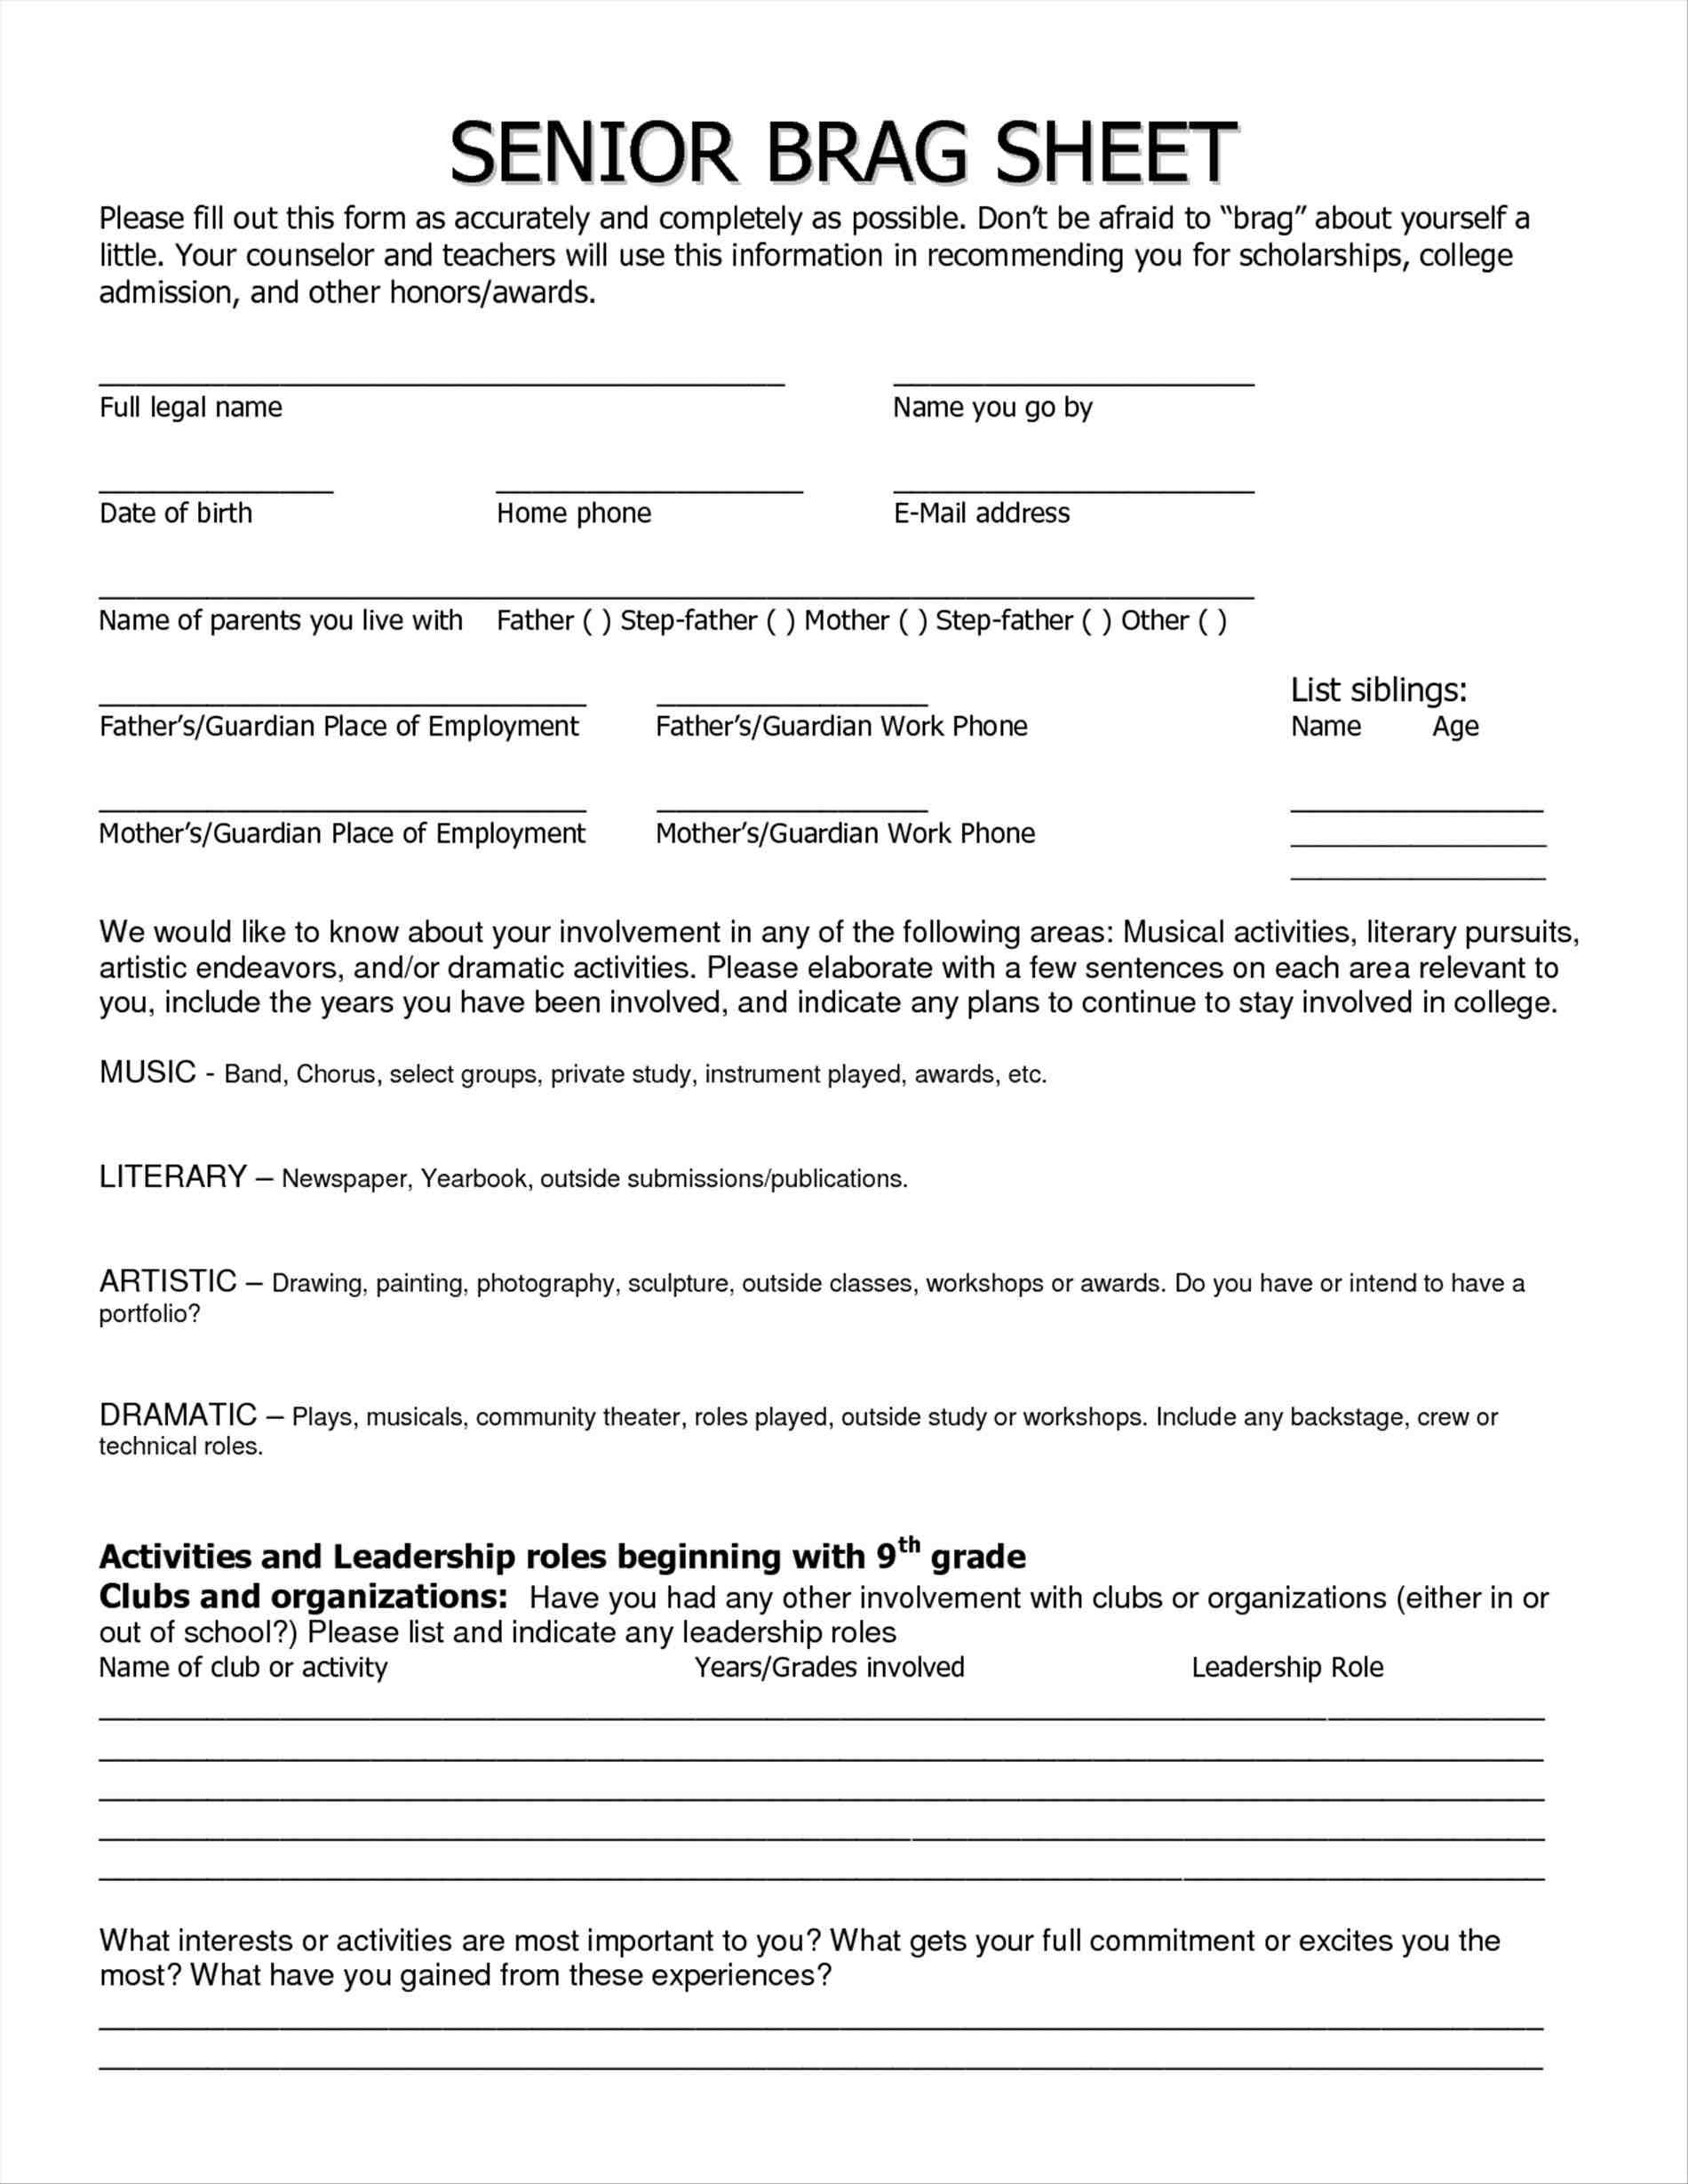 Brag Sheet Template For Letter Of Recommendation